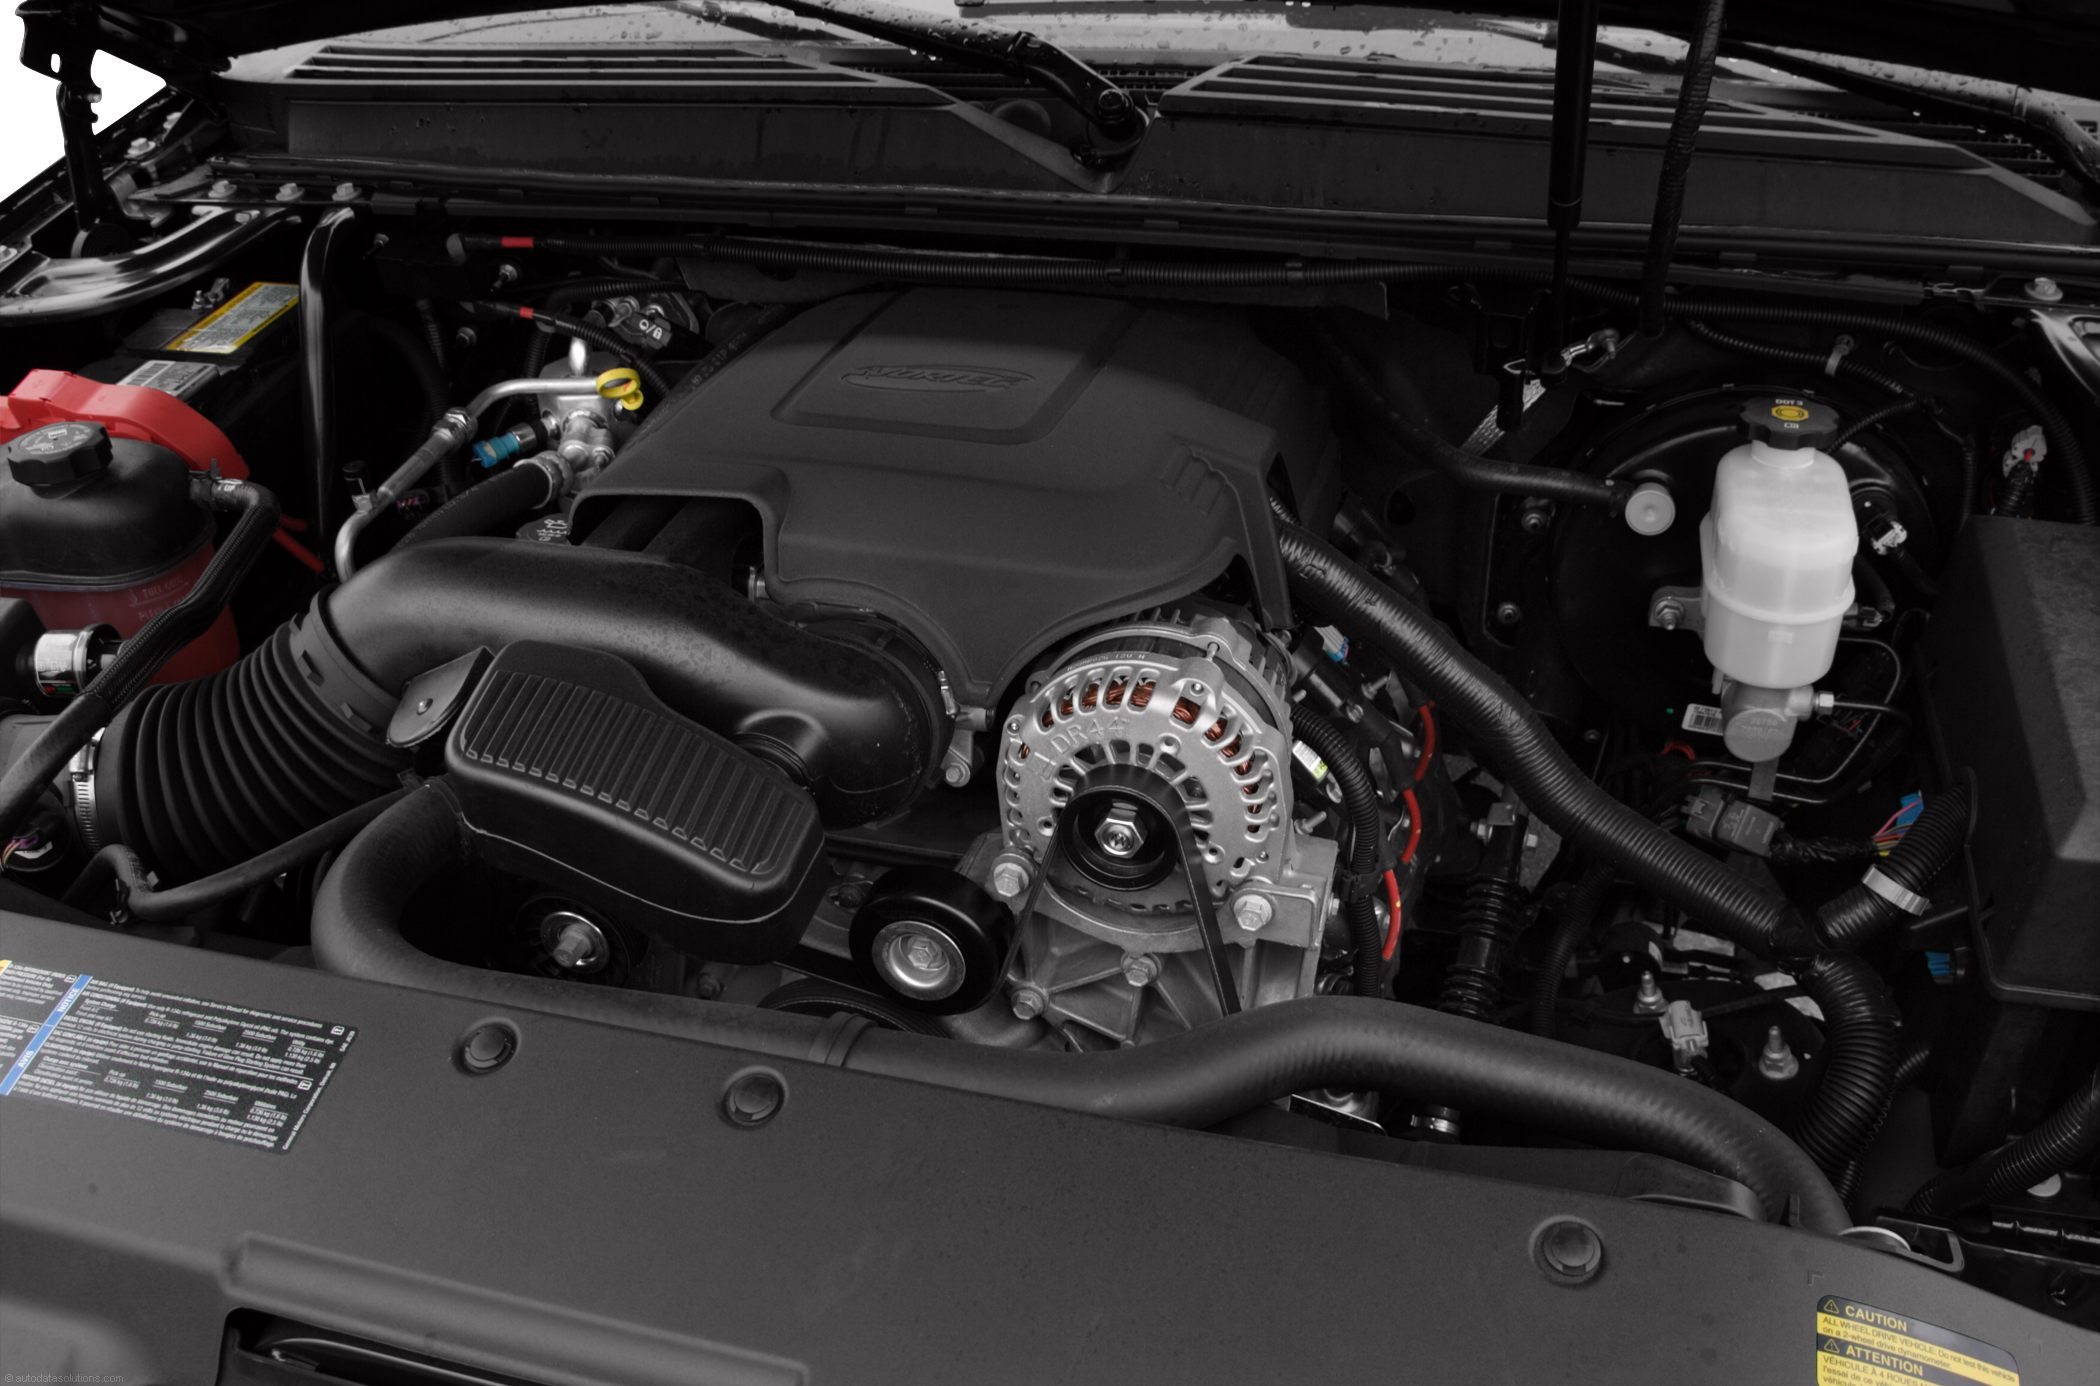 Cadillac Escalade EXT engine #3